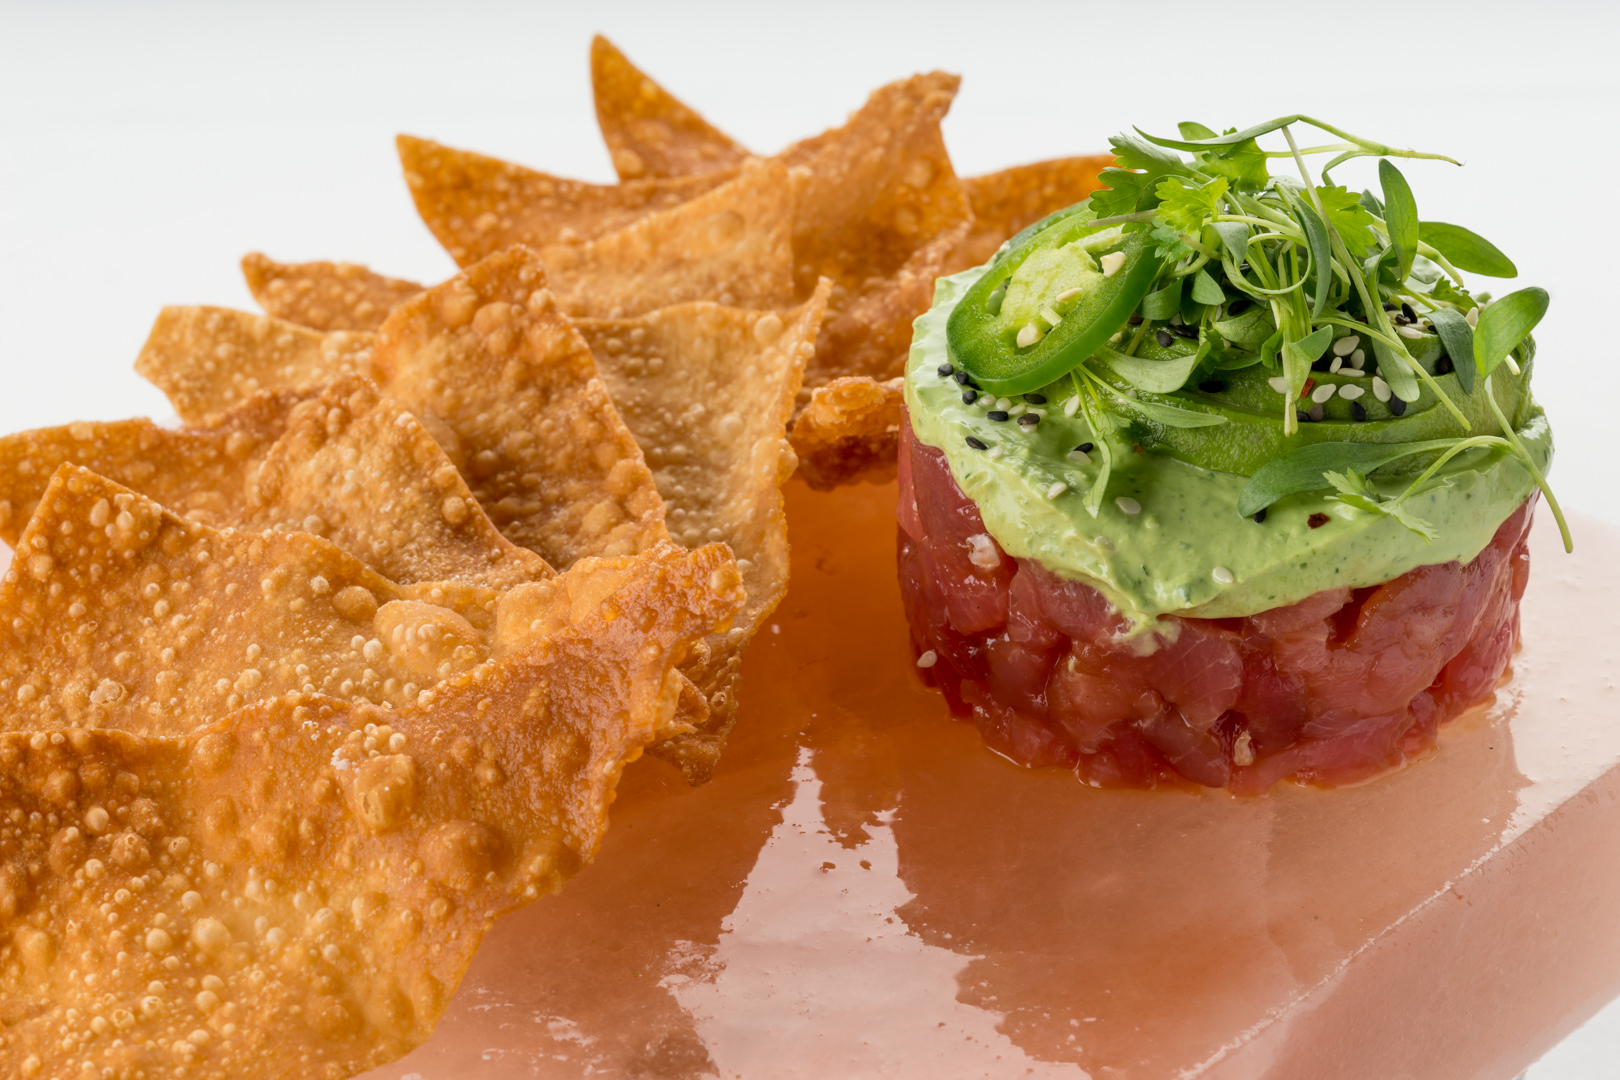 Cool River Cafe - Ahi Tuna Tartare